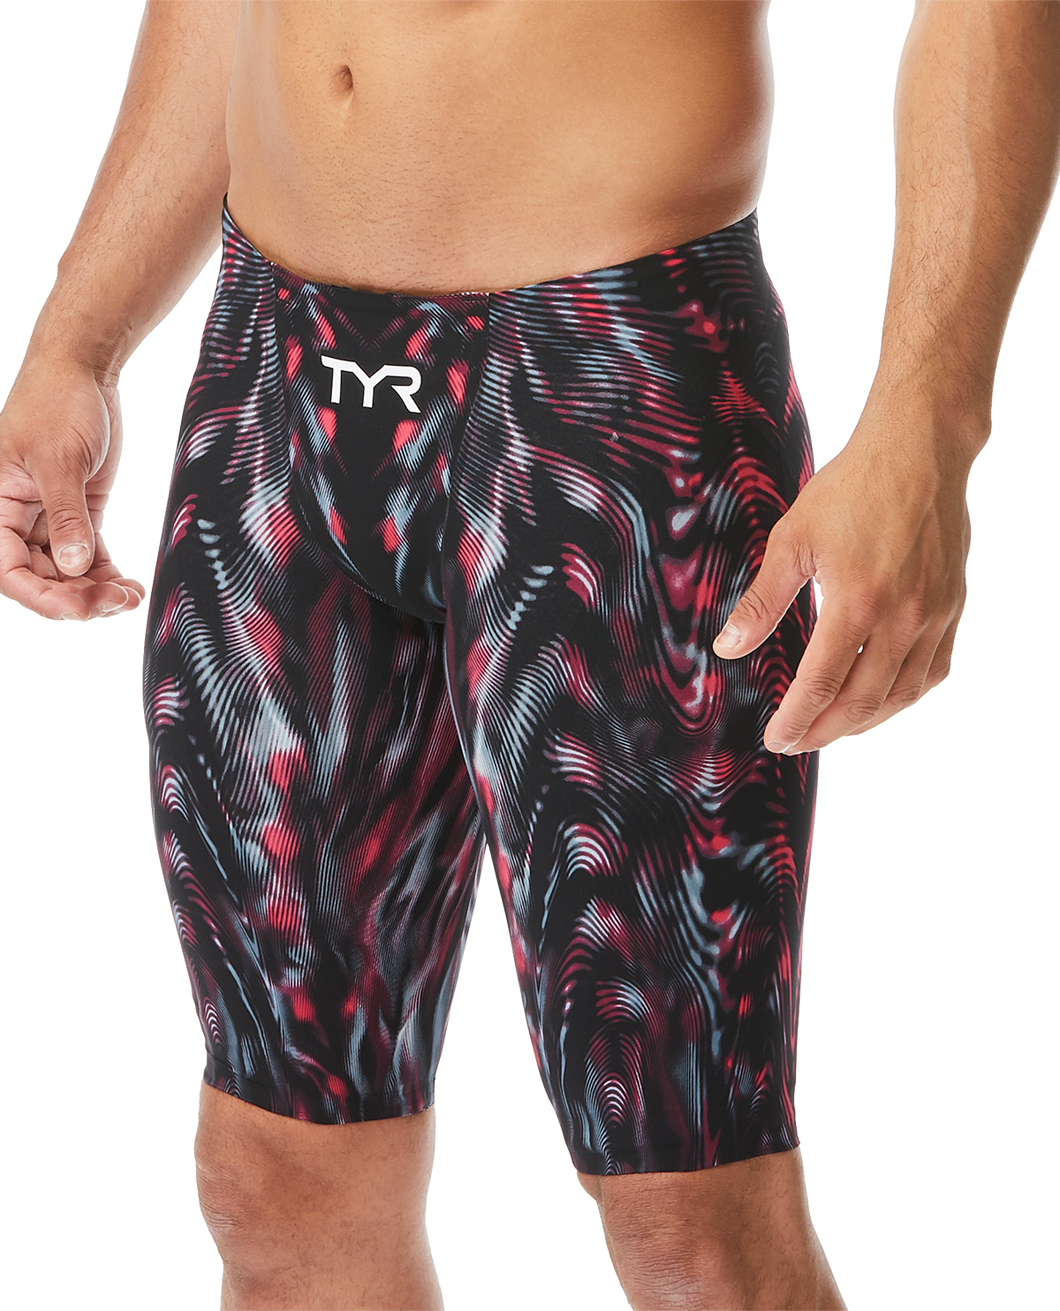 TYR STEEL RED VENZO GENESIS JAMMER SWIMSUIT